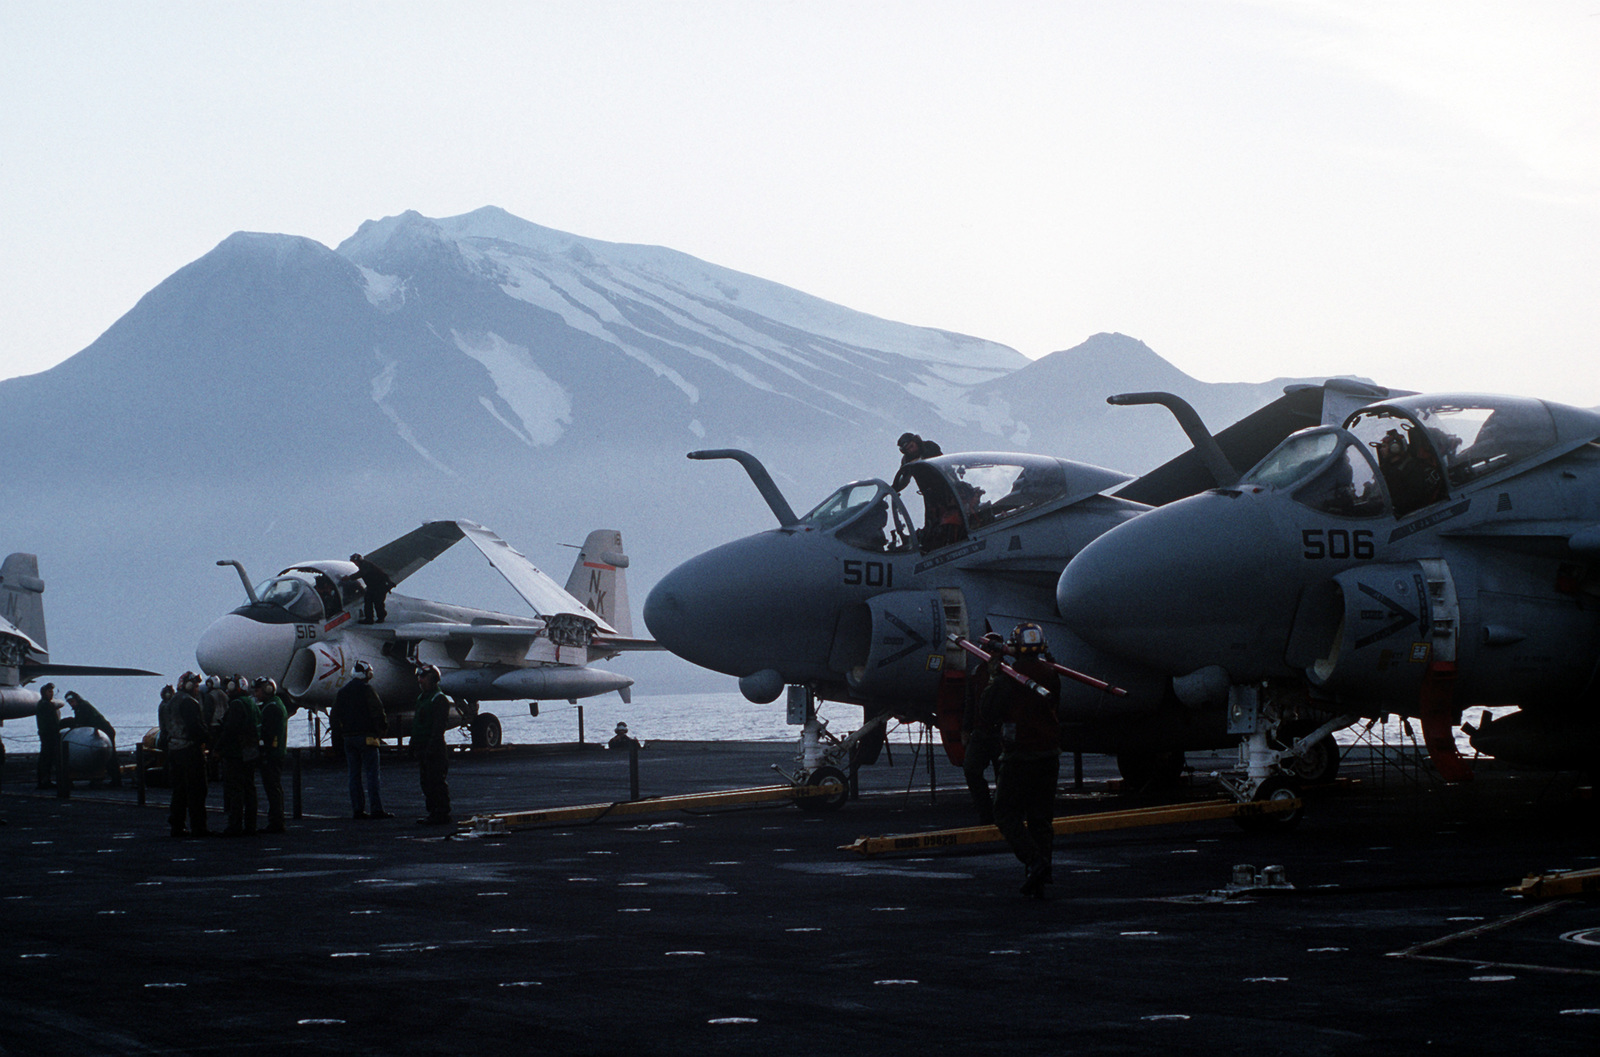 Flight deck crew members service A-6E Intruder aircraft aboard the aircraft carrier USS CONSTELLATION (CV 64) during PACEX '89